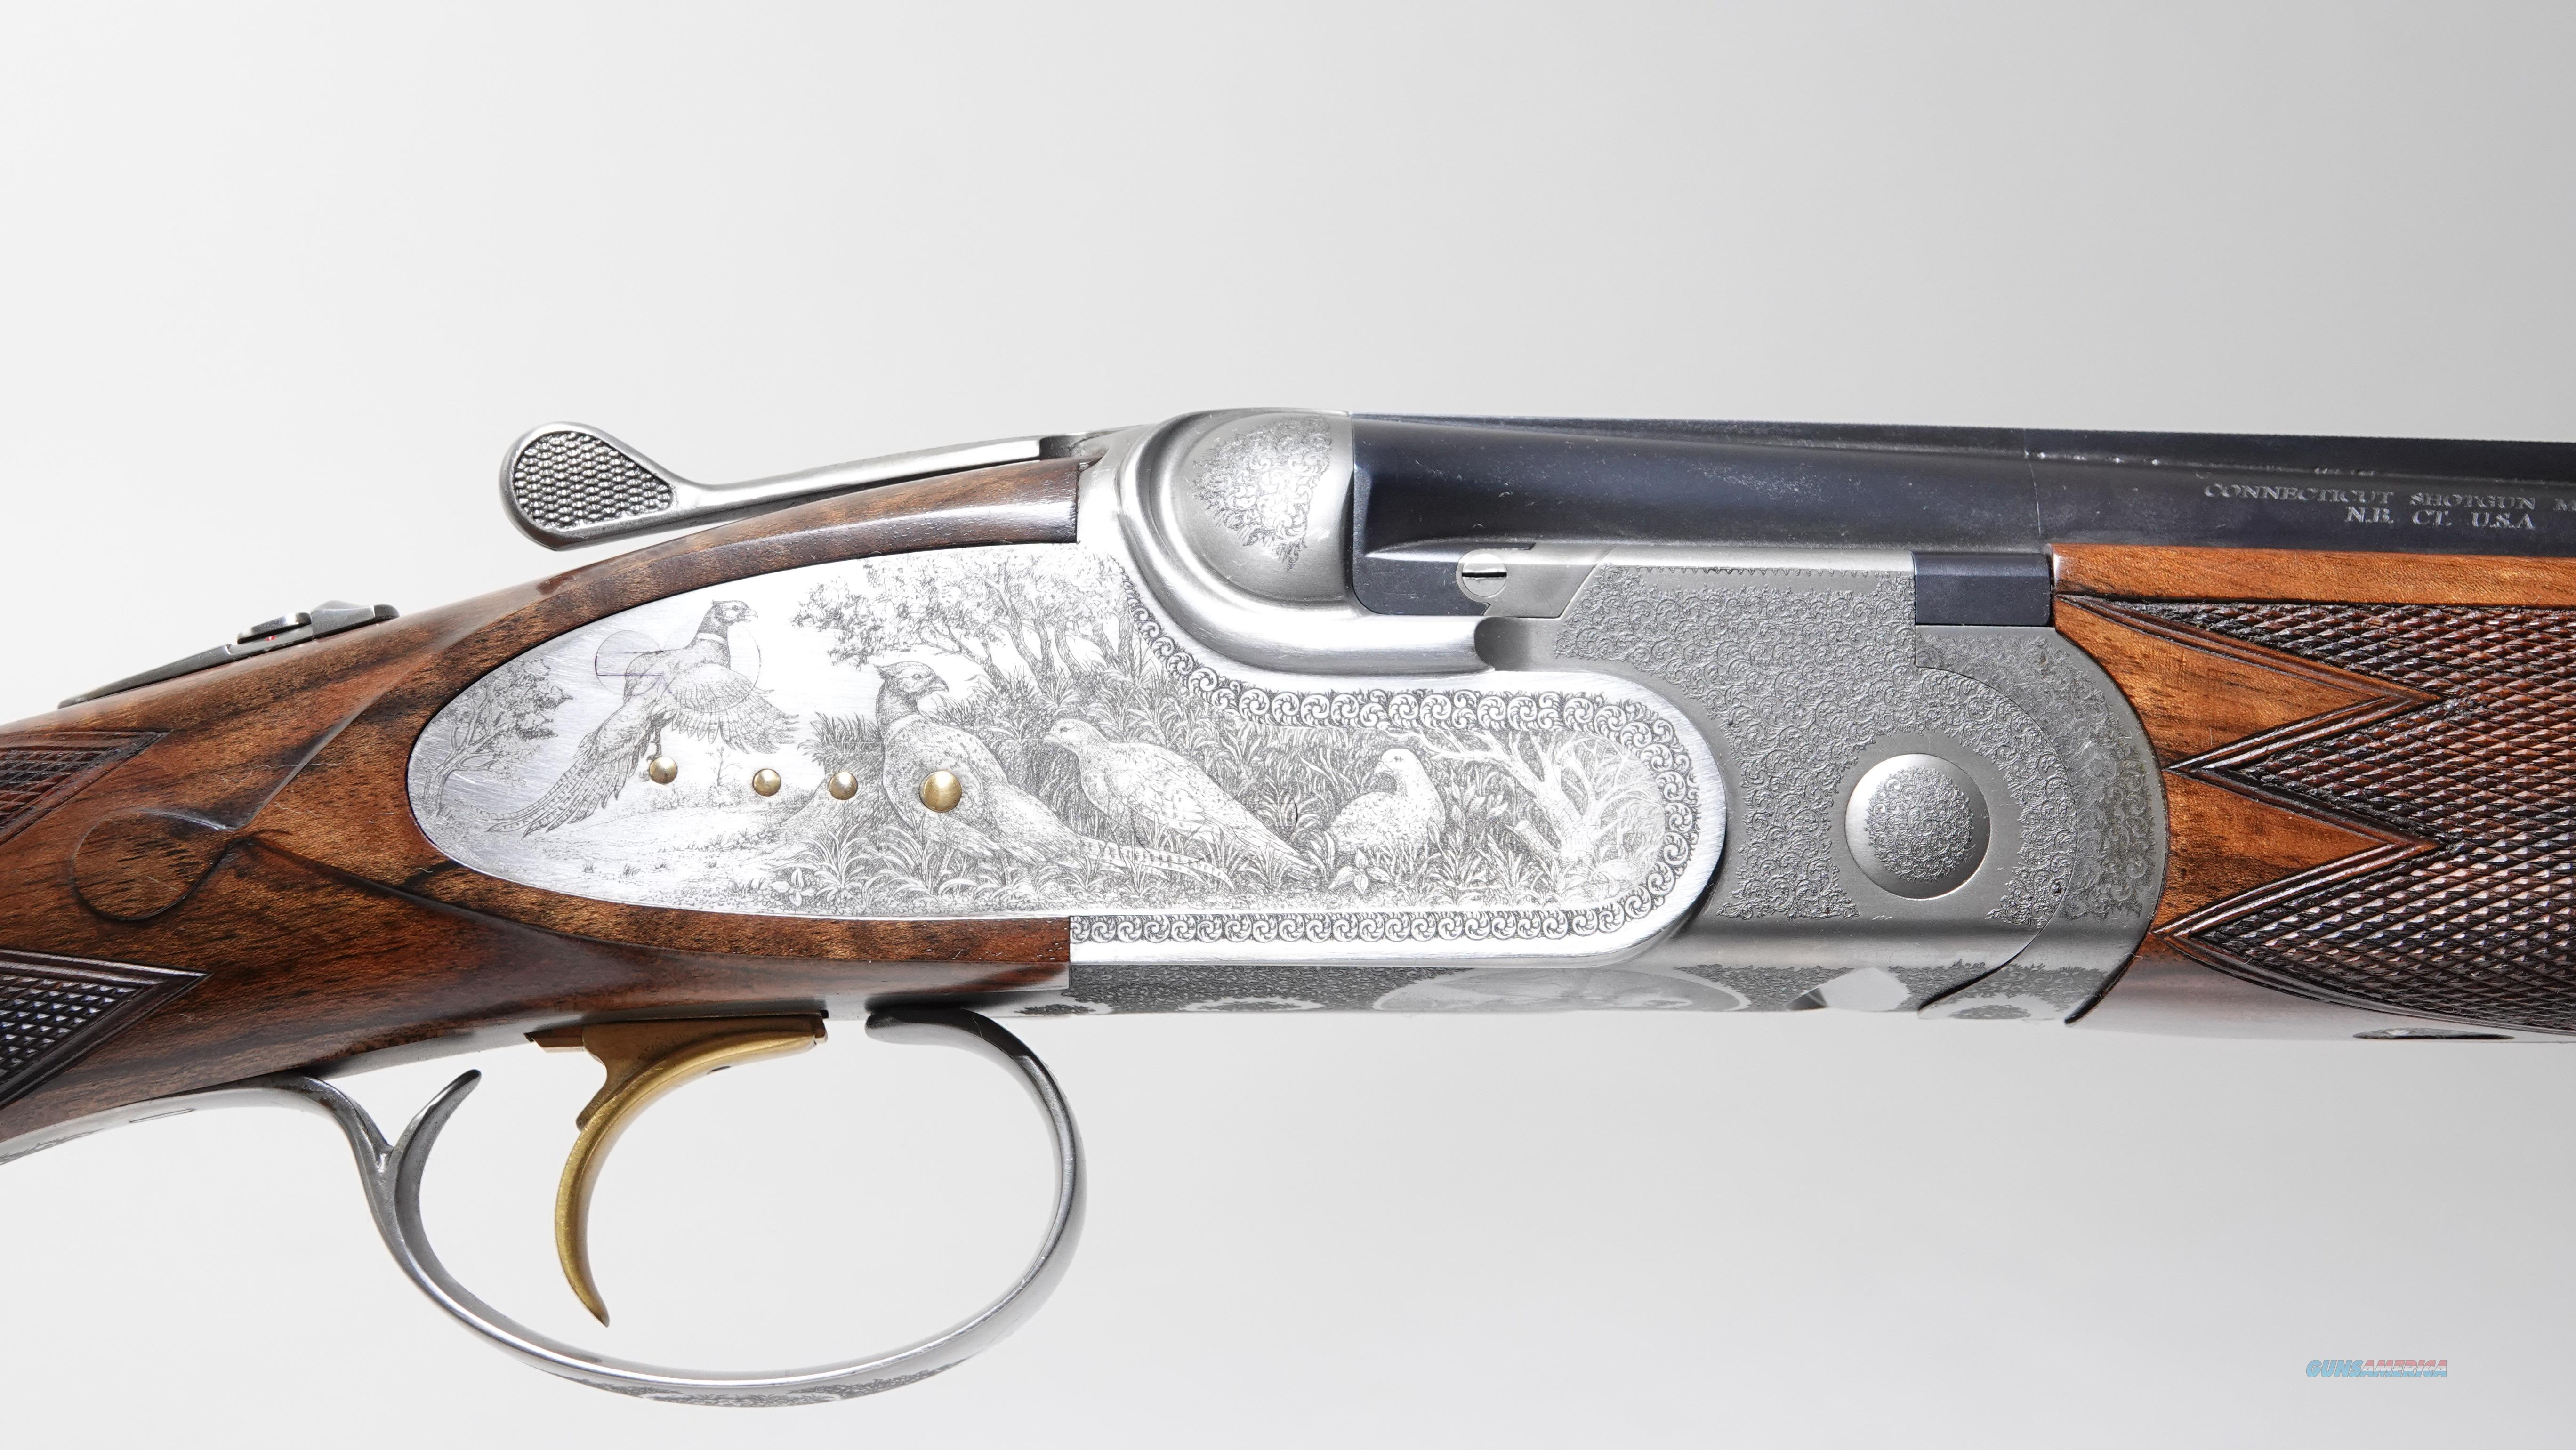 "CSMC - Christian Hunter, Platinum, 20ga. 30"" Barrels.  Guns > Shotguns > Connecticut (Galazan) Shotguns"